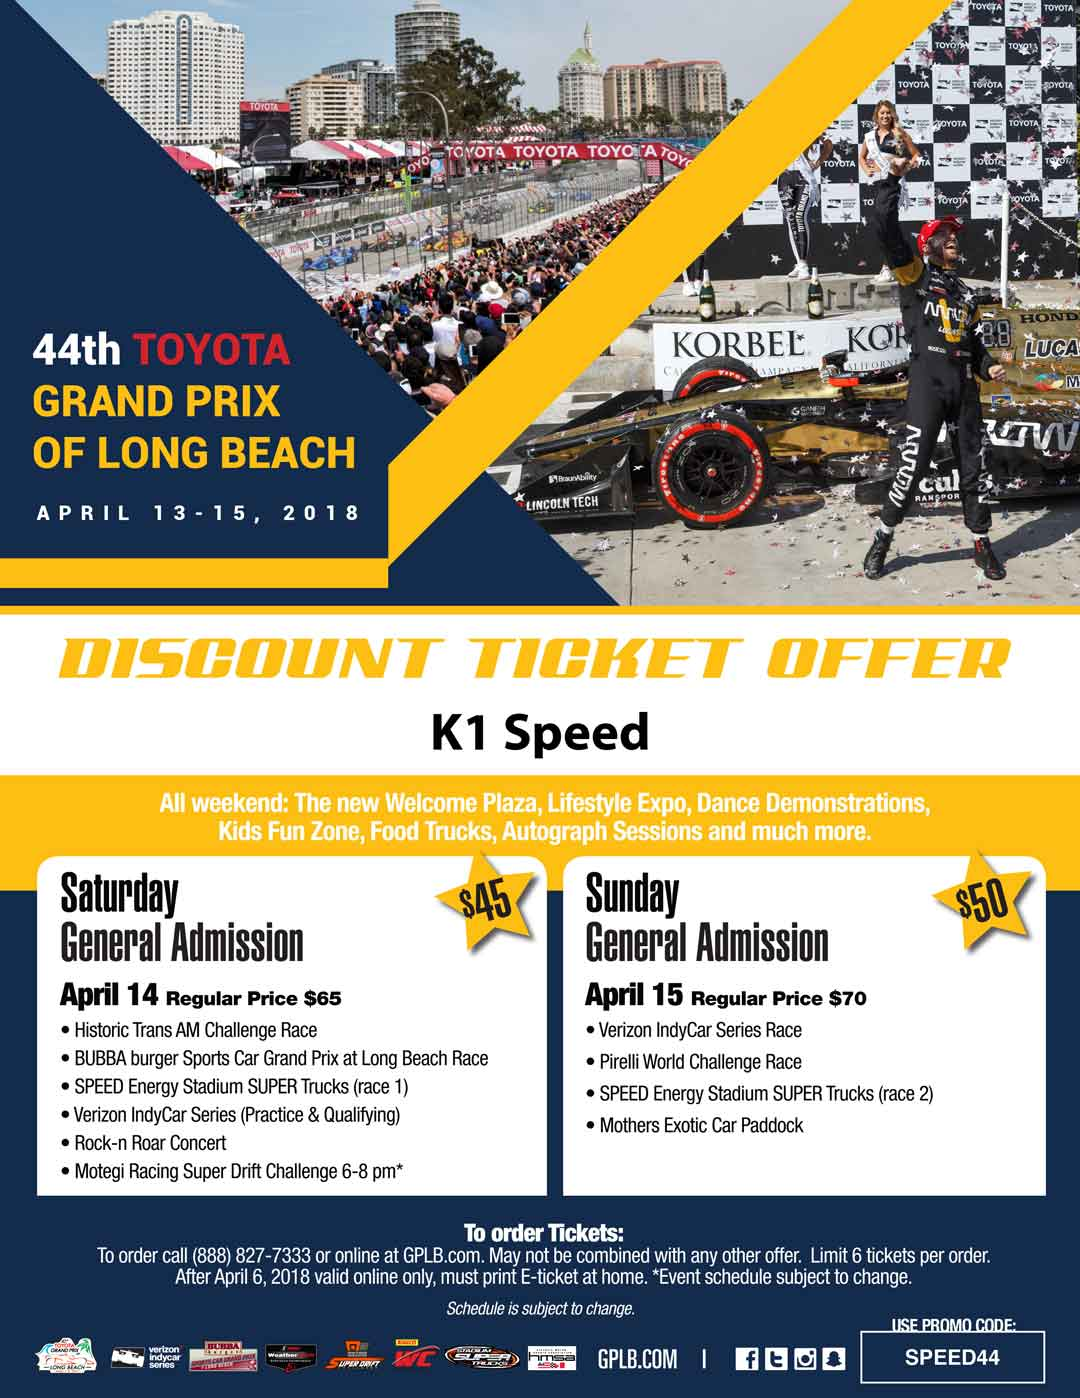 TGPLB Discount Ticket Offer